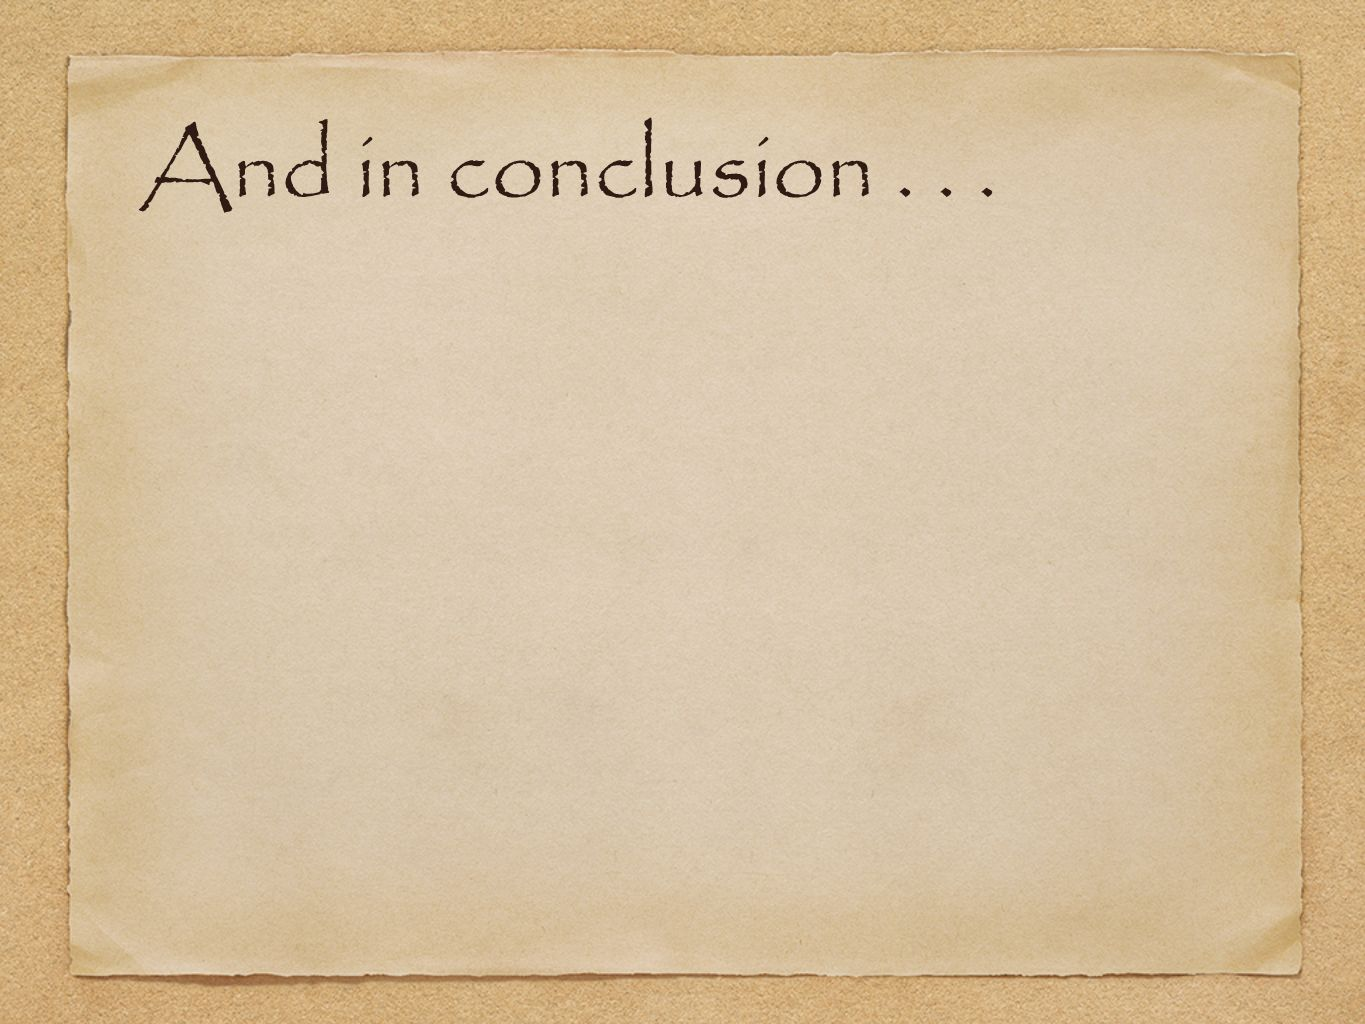 And in conclusion...